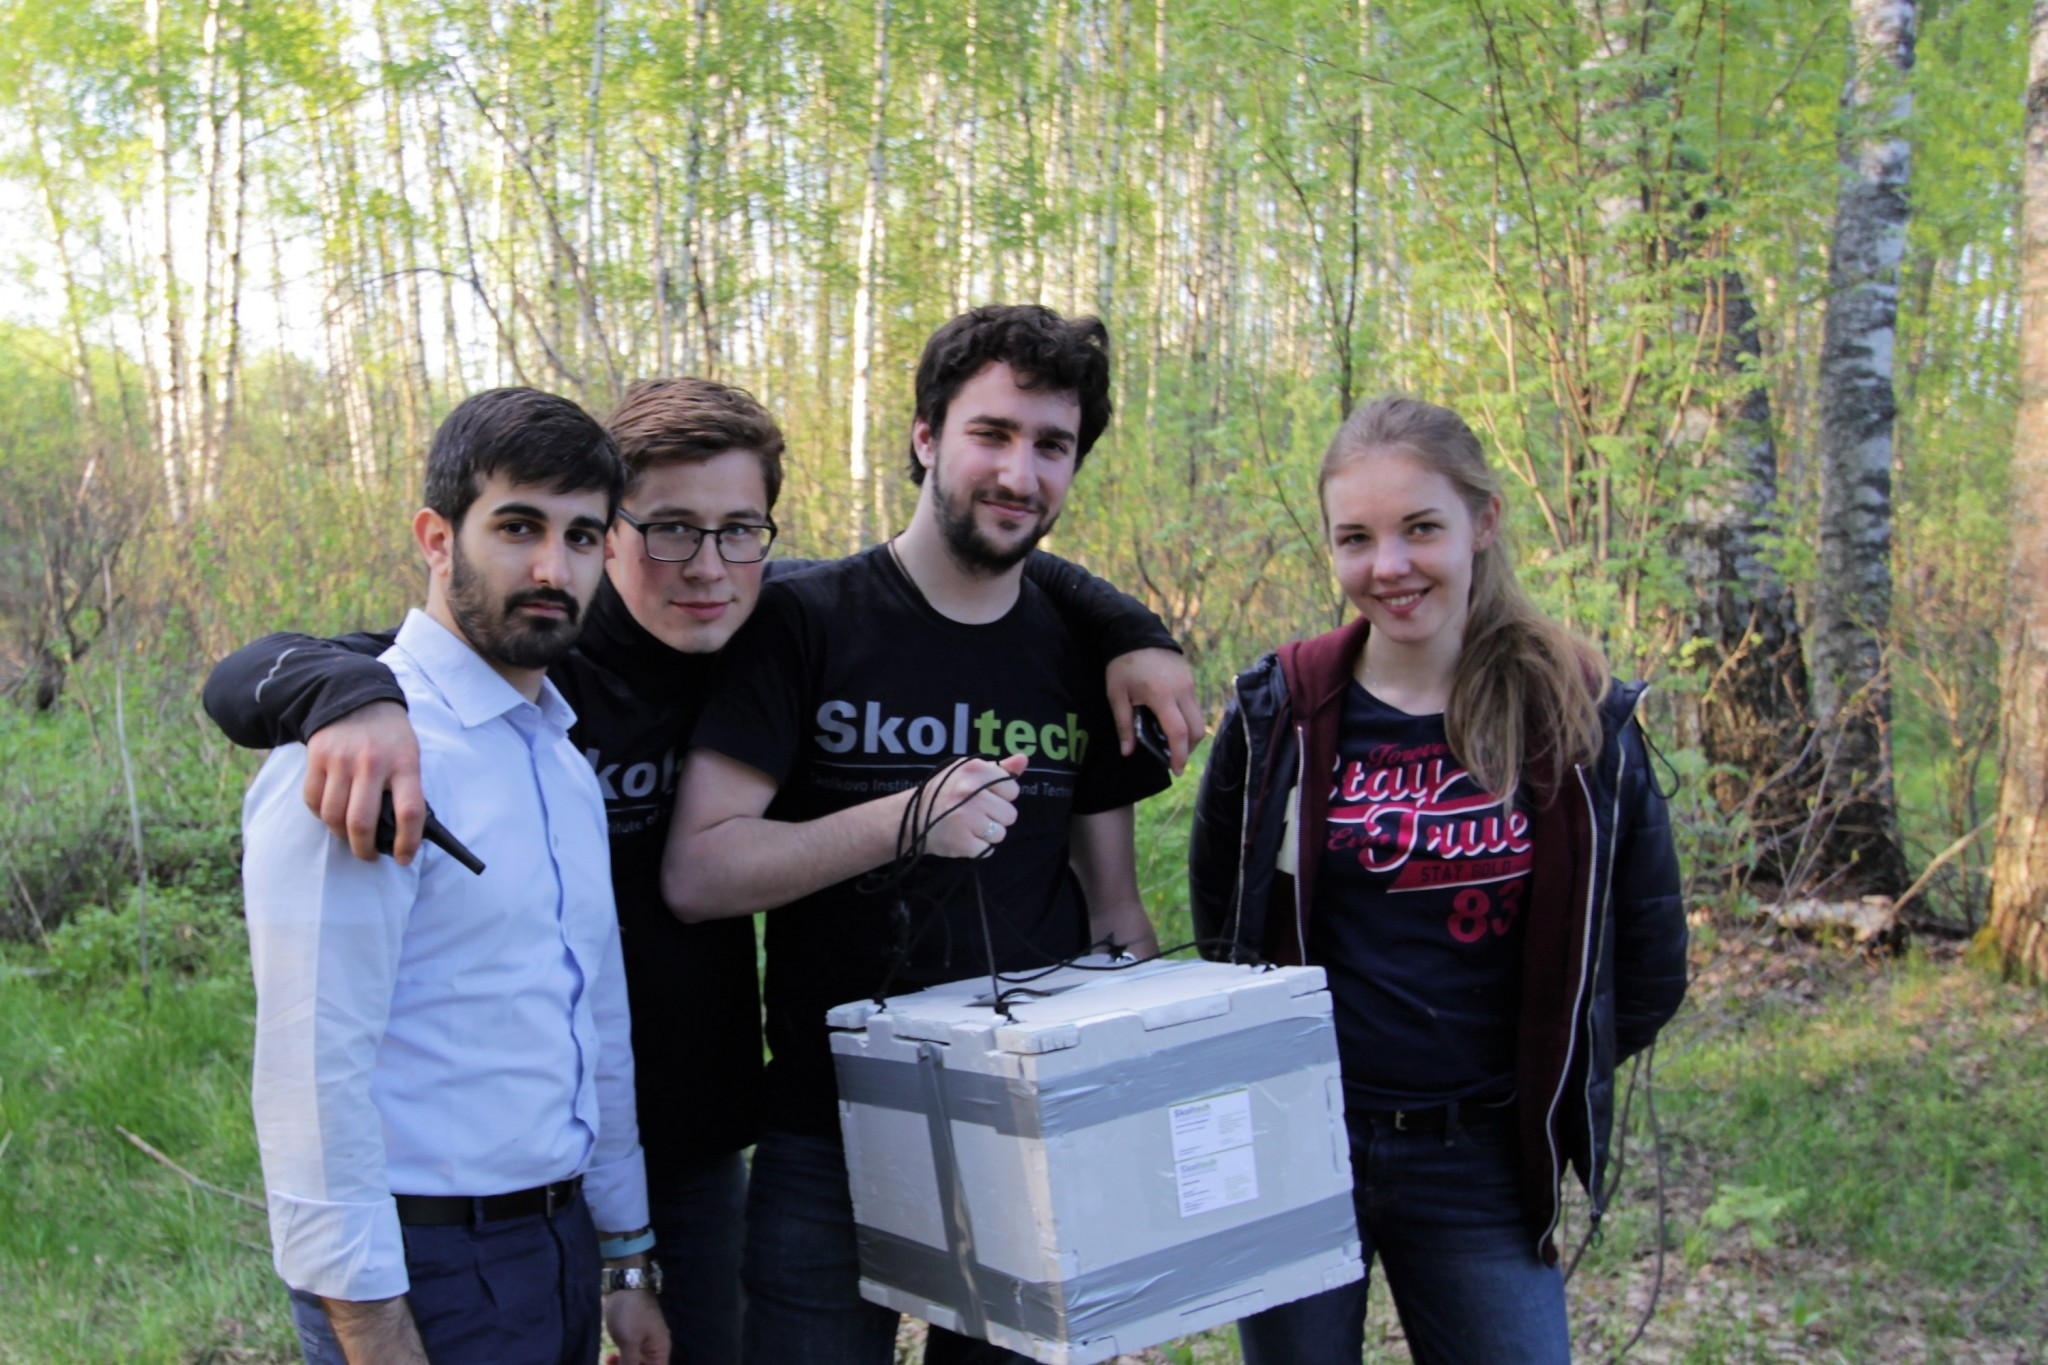 After an epic quest and innumerable mosquito bites, Nicola Garzaniti, Rustam Akhtyamov, Raffaele Gradini and Anastasia Stelvaga pose victoriously with their payload. Photo: Skoltech.